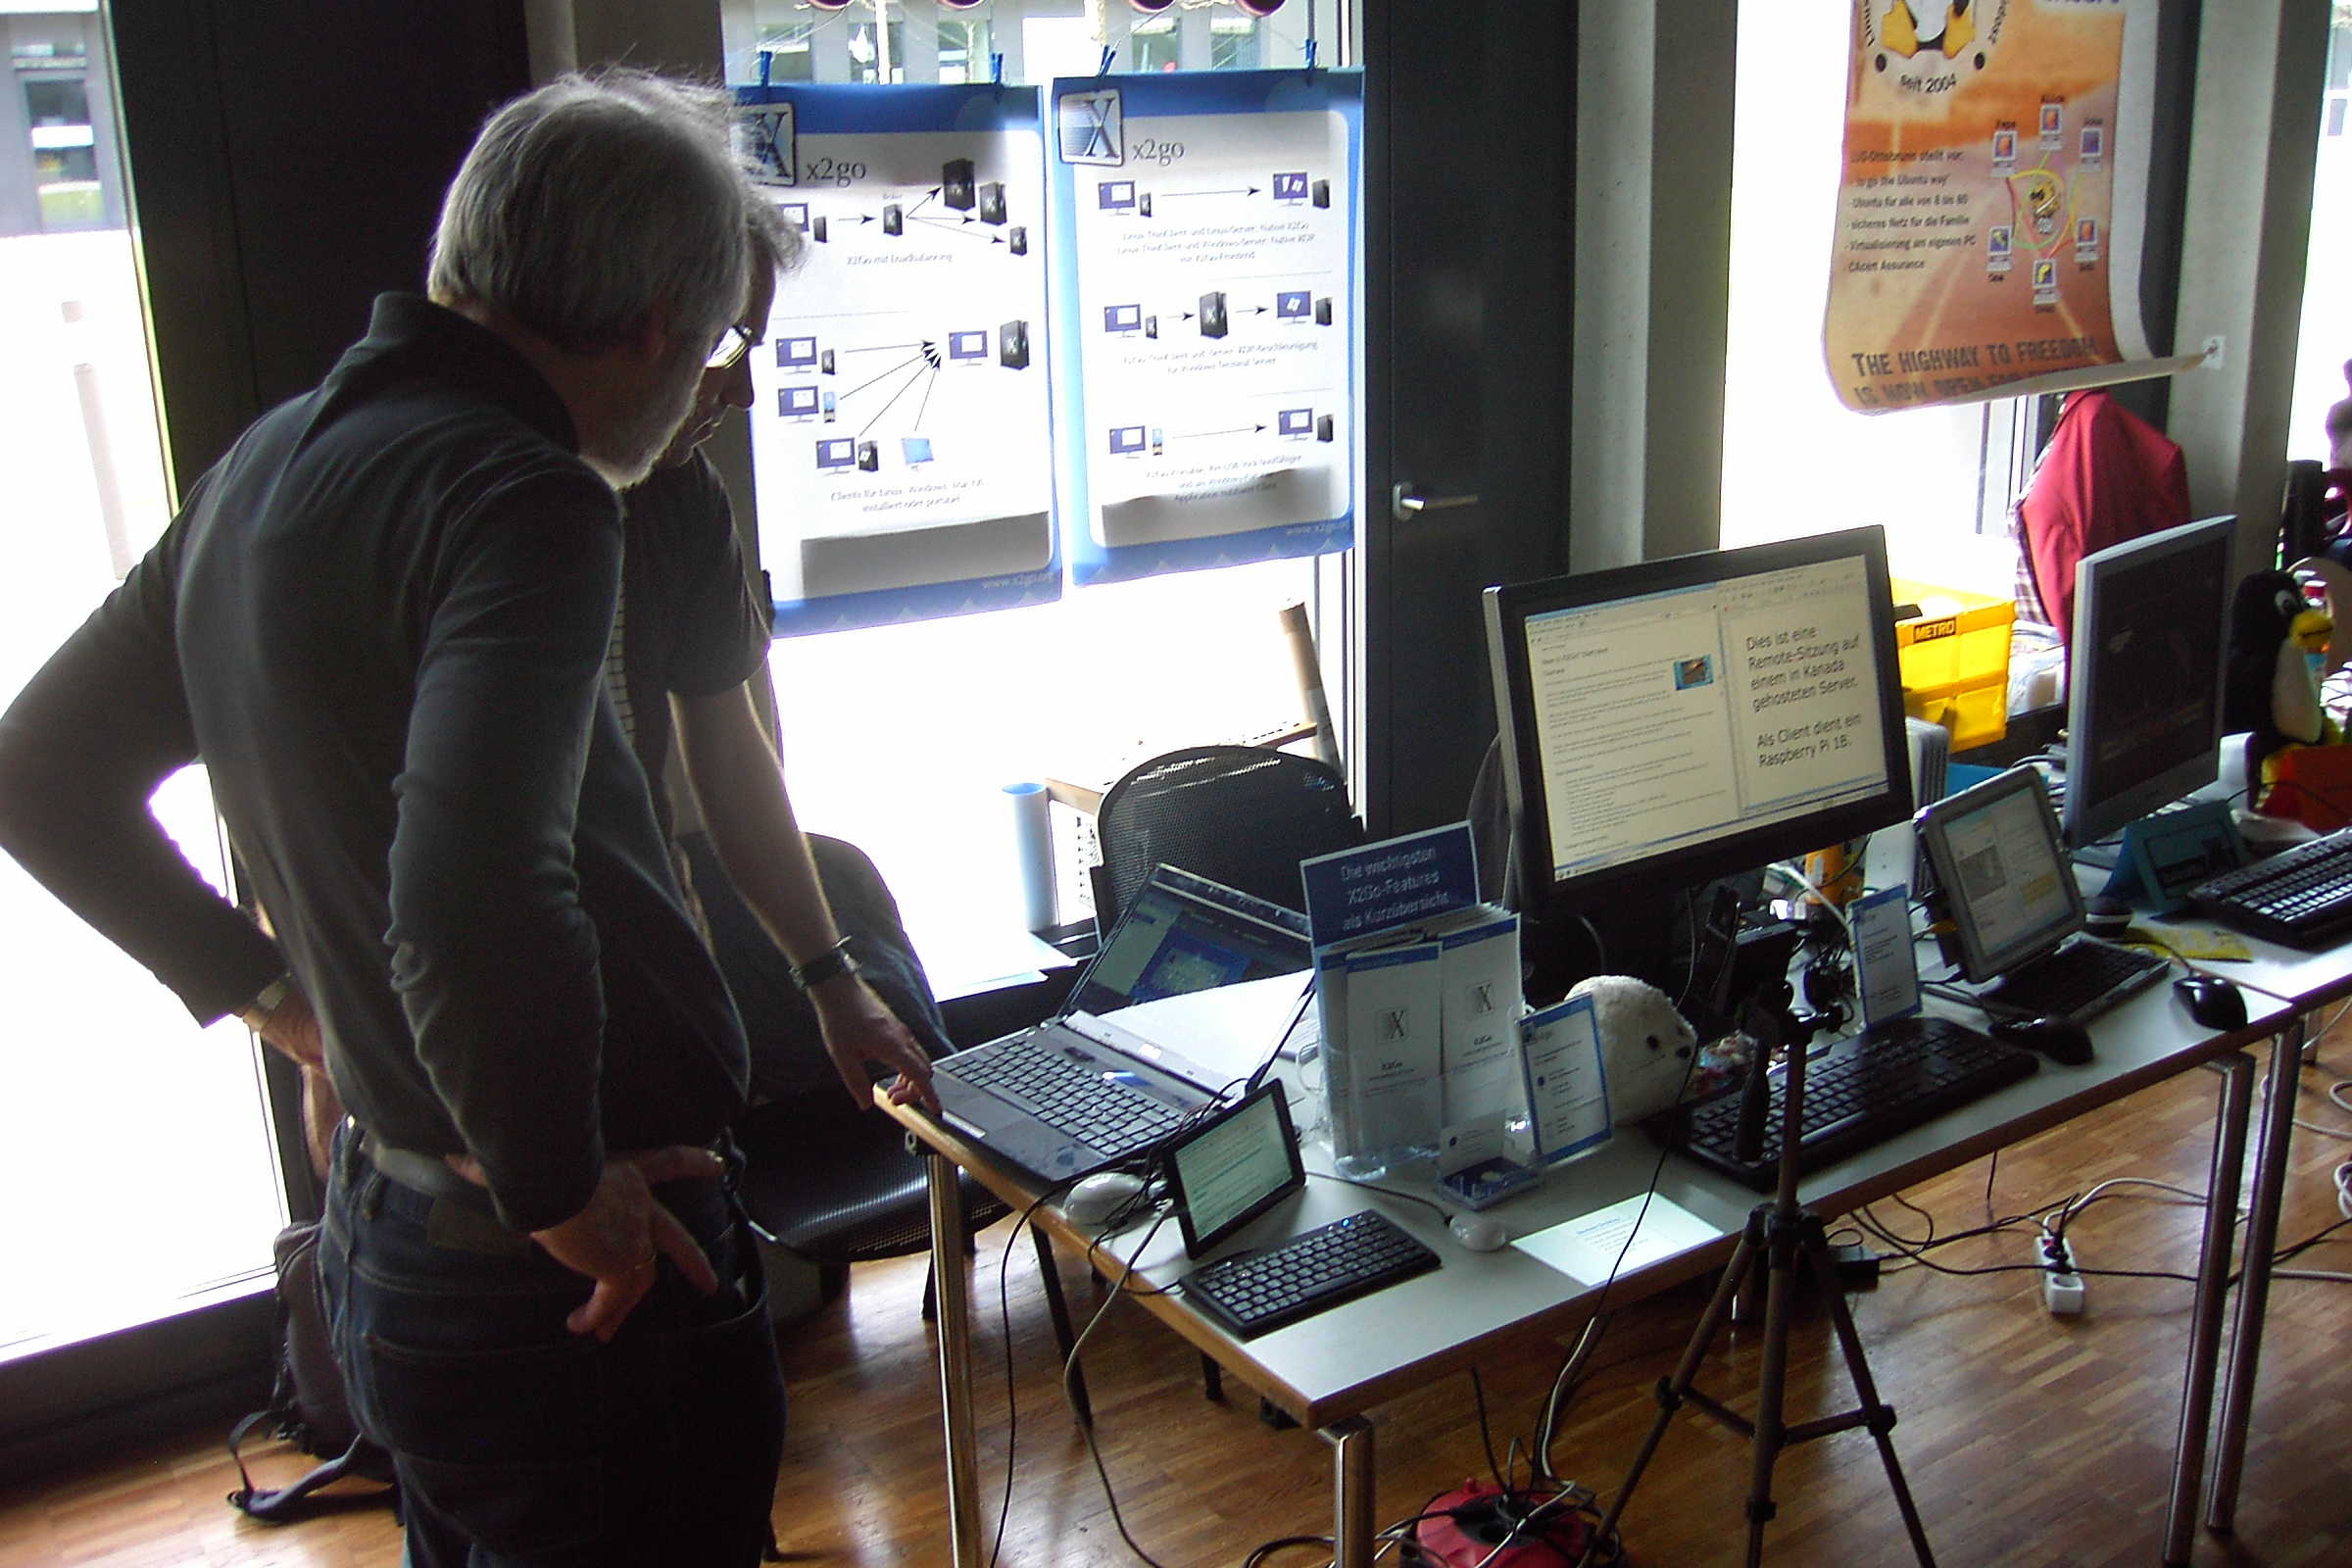 Heinz giving a quick demo on his laptop to another visitor